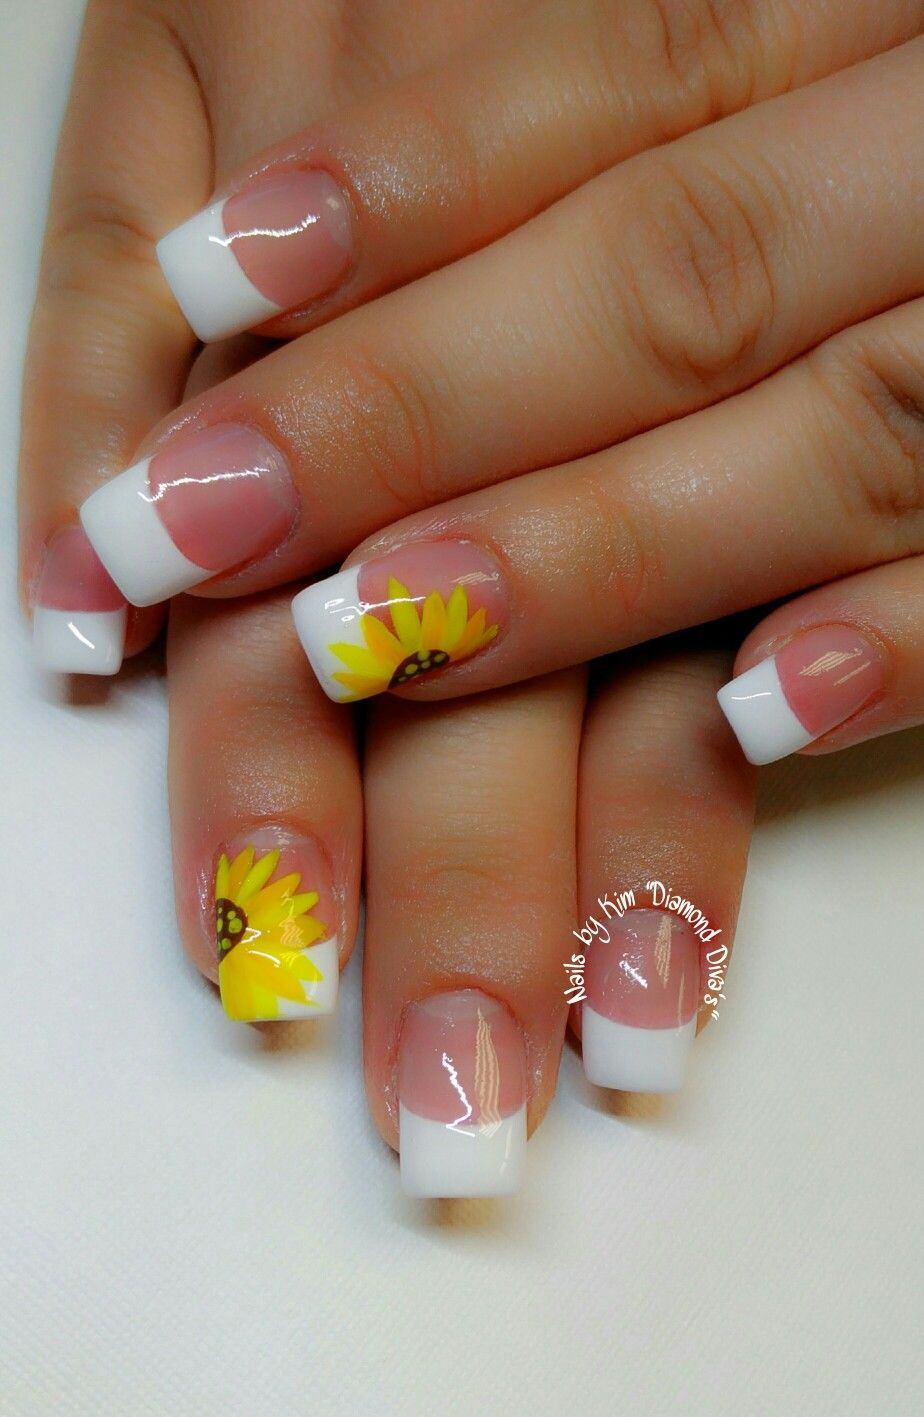 Sunflower nails - Sunflower Nails Nails In 2019 Nails, Nail Designs, Sunflower Nails